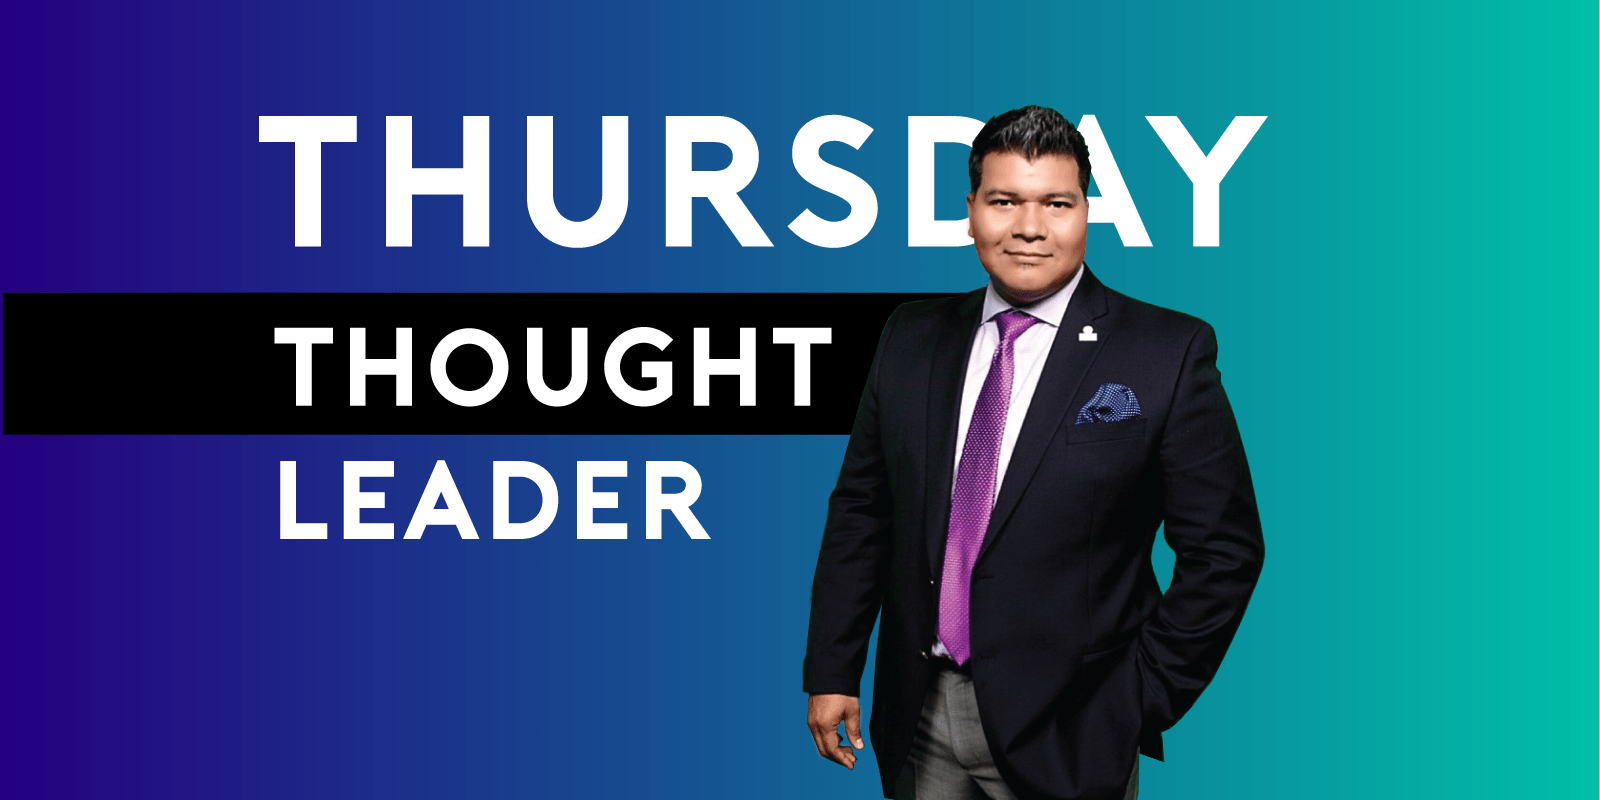 This week's Thursday Thought Leader is Carlos Luna, the Director of Government Affairs MDGuidelines at Reed Group, as featured by LegalNet Inc, a litigation cost management company.